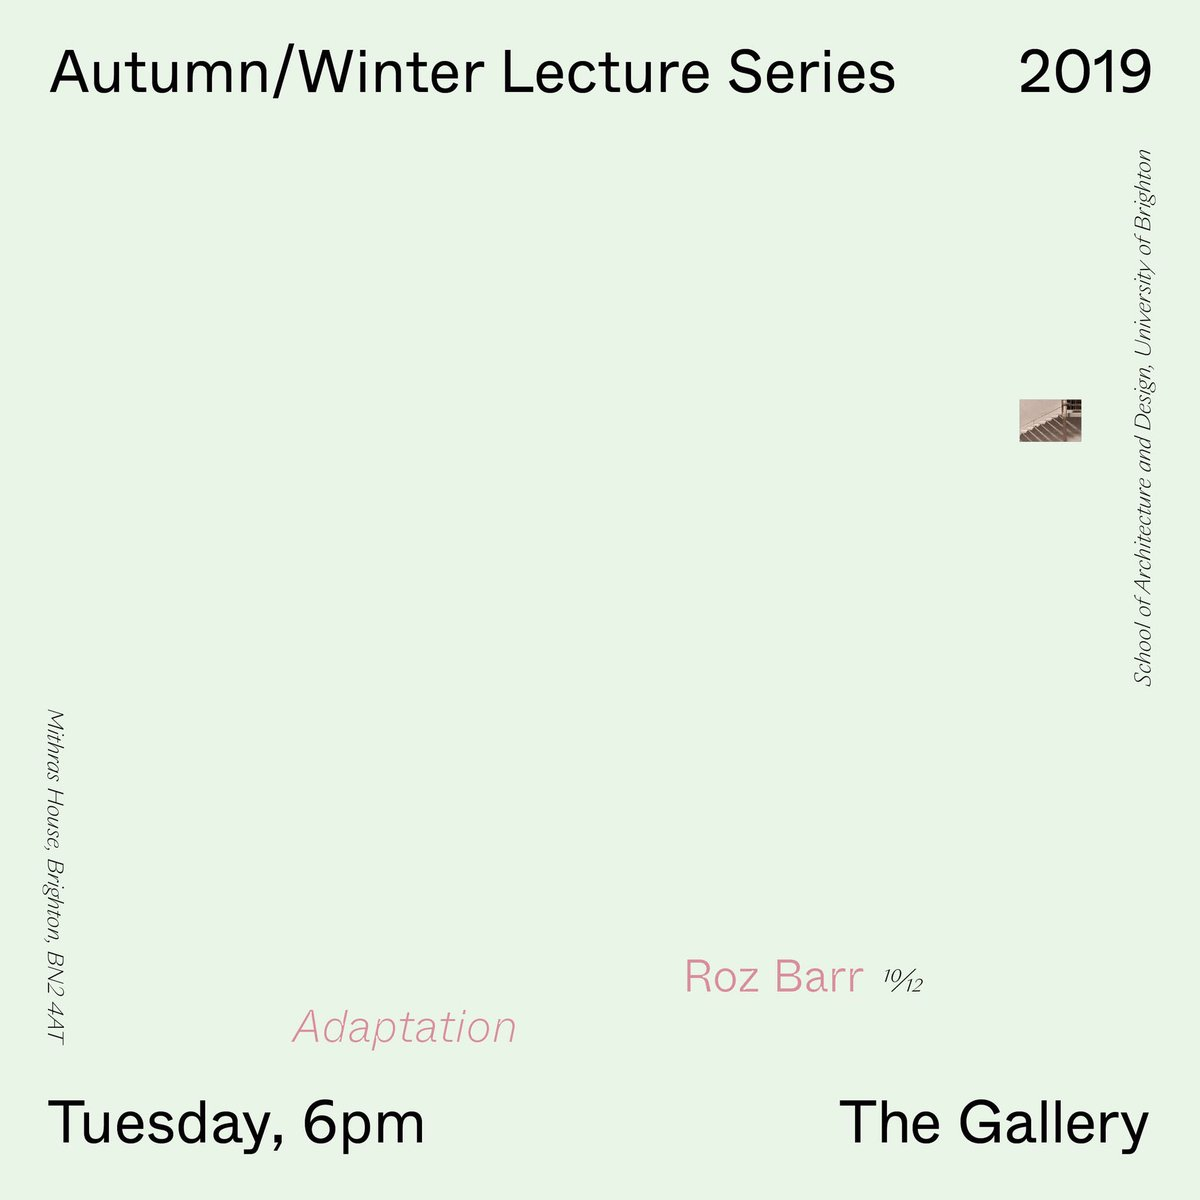 Next week's talk is by Roz Barr and it is the final one in our current Public Lecture series! 'Adaptation' starts at 6pm in The Gallery at Mithras House on 10th December. These lectures are public so all are welcome! @artsbrighton @UoBOutreach @RIBASouthEast #SoAD